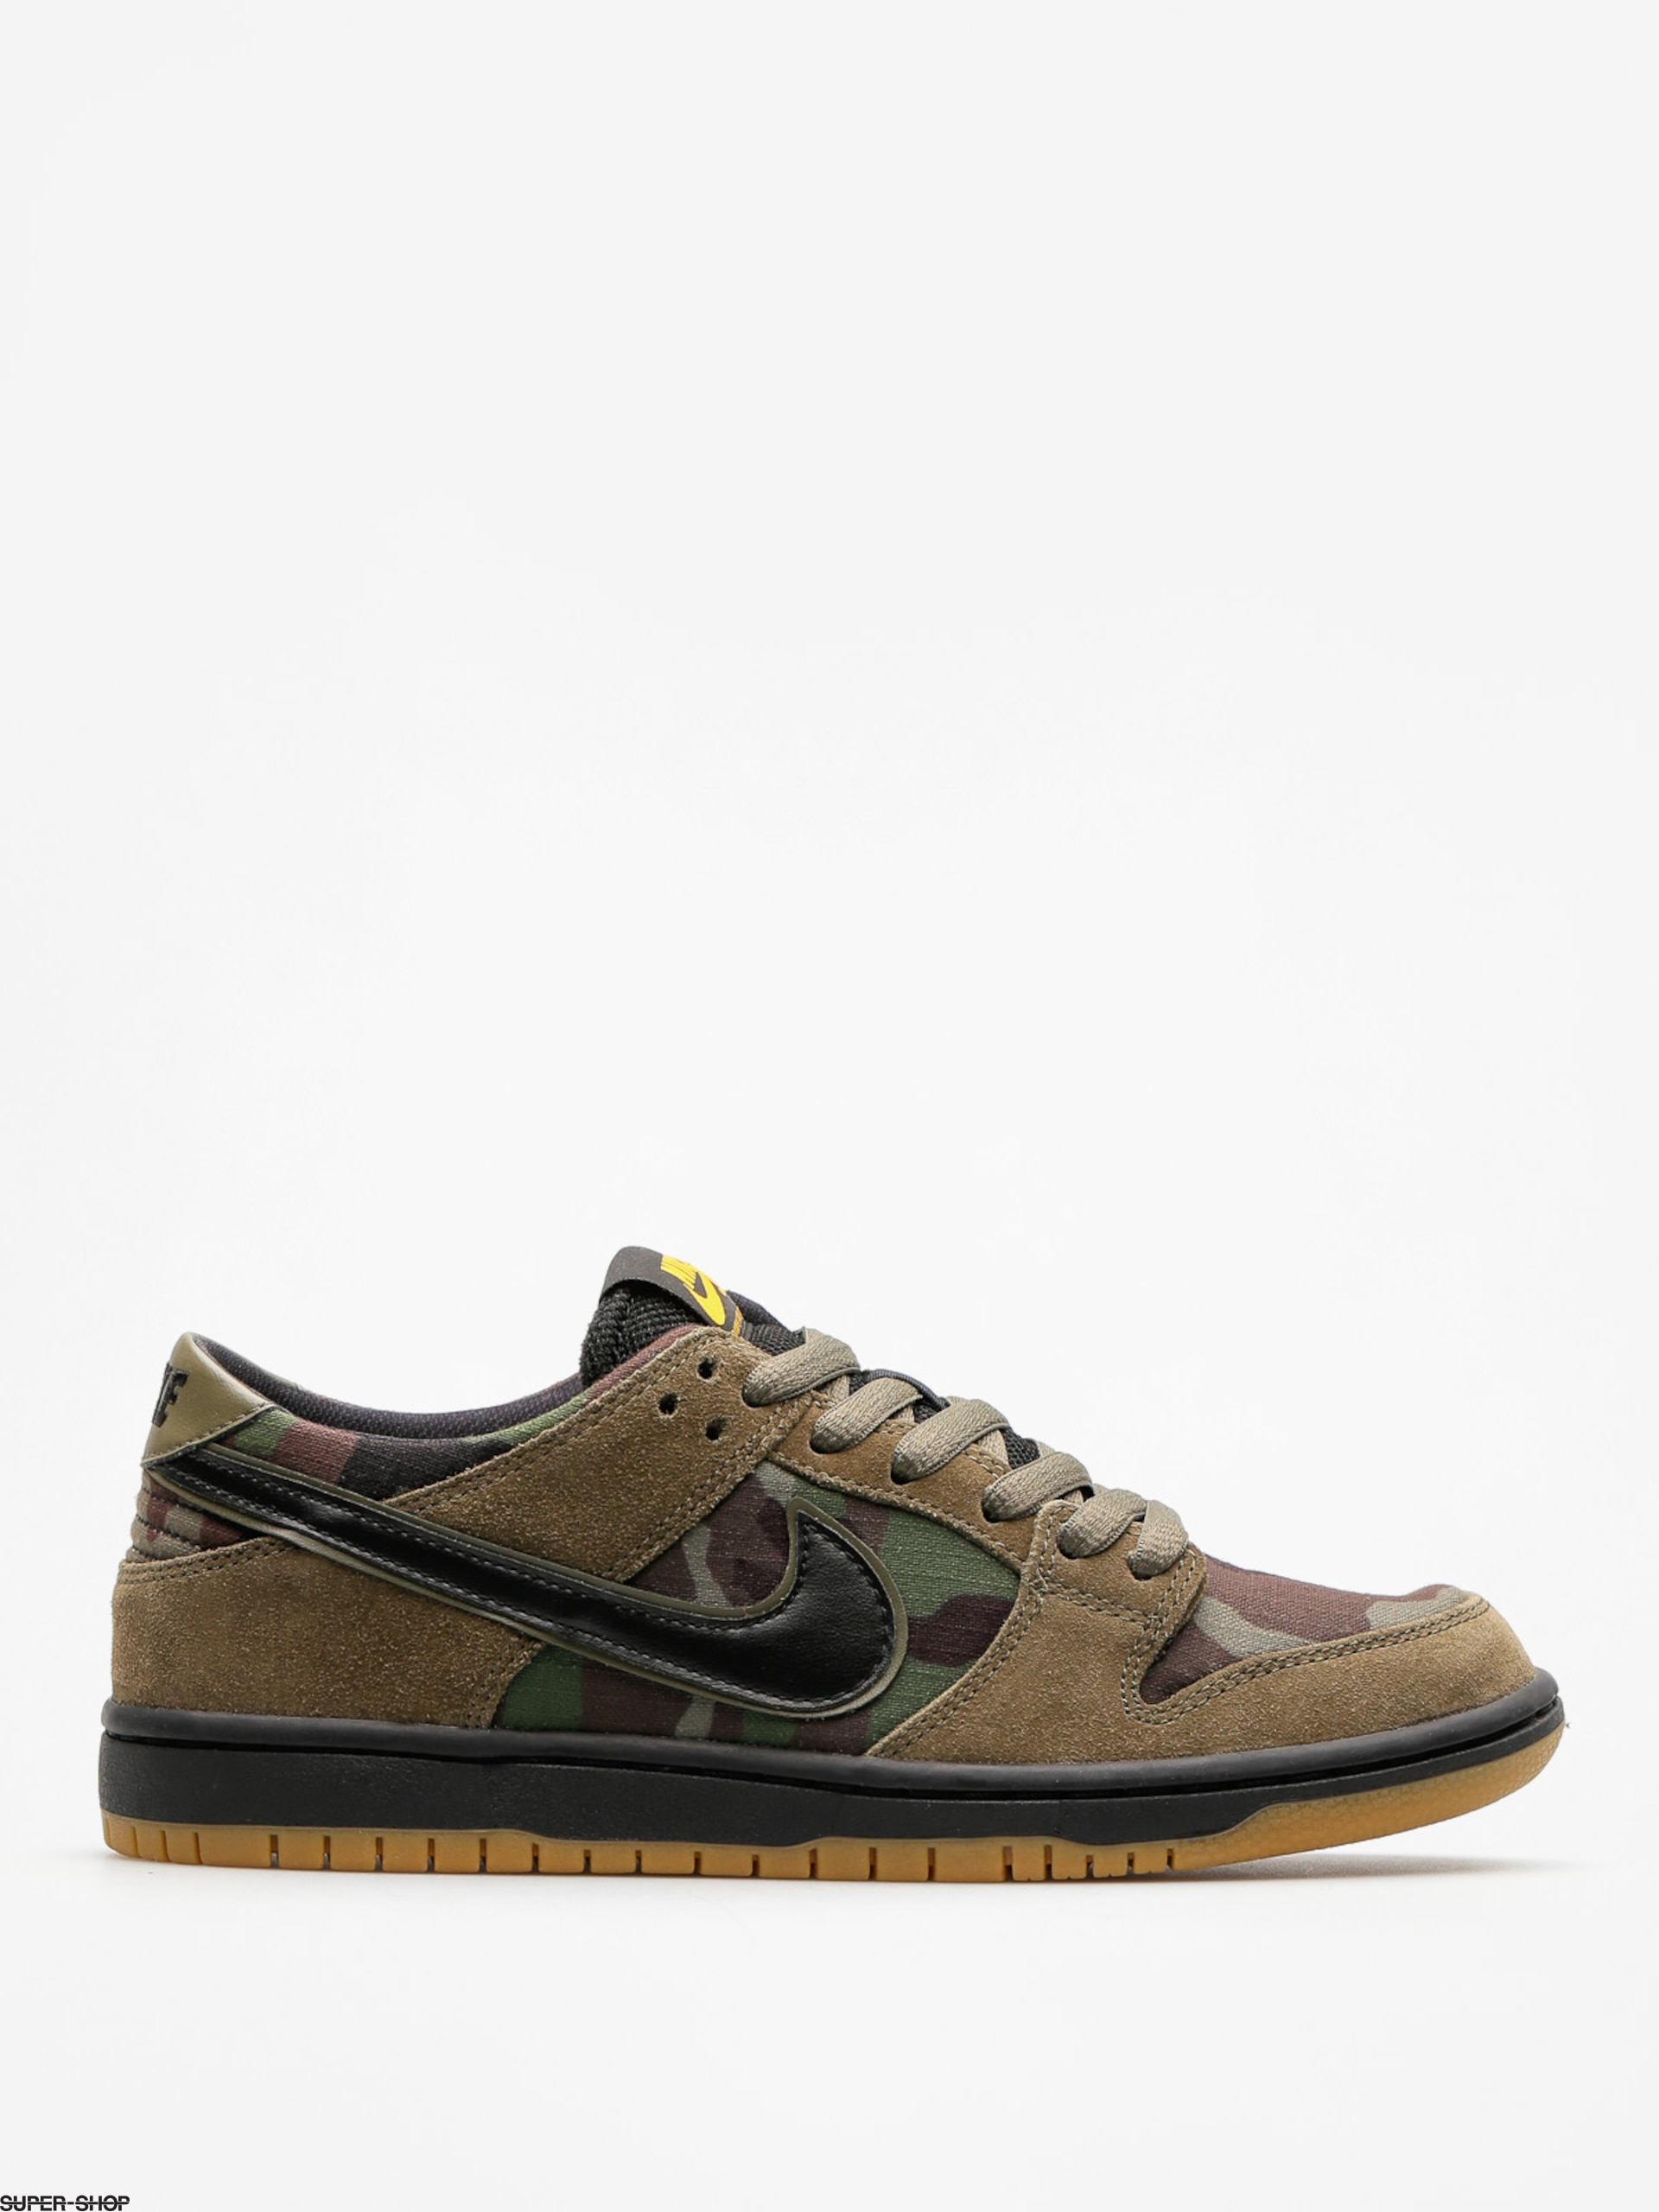 sneakers for cheap 56624 819a7 ... usa nike sb shoes zoom dunk low pro medium olive black gum light brown  4bb3e 51d43